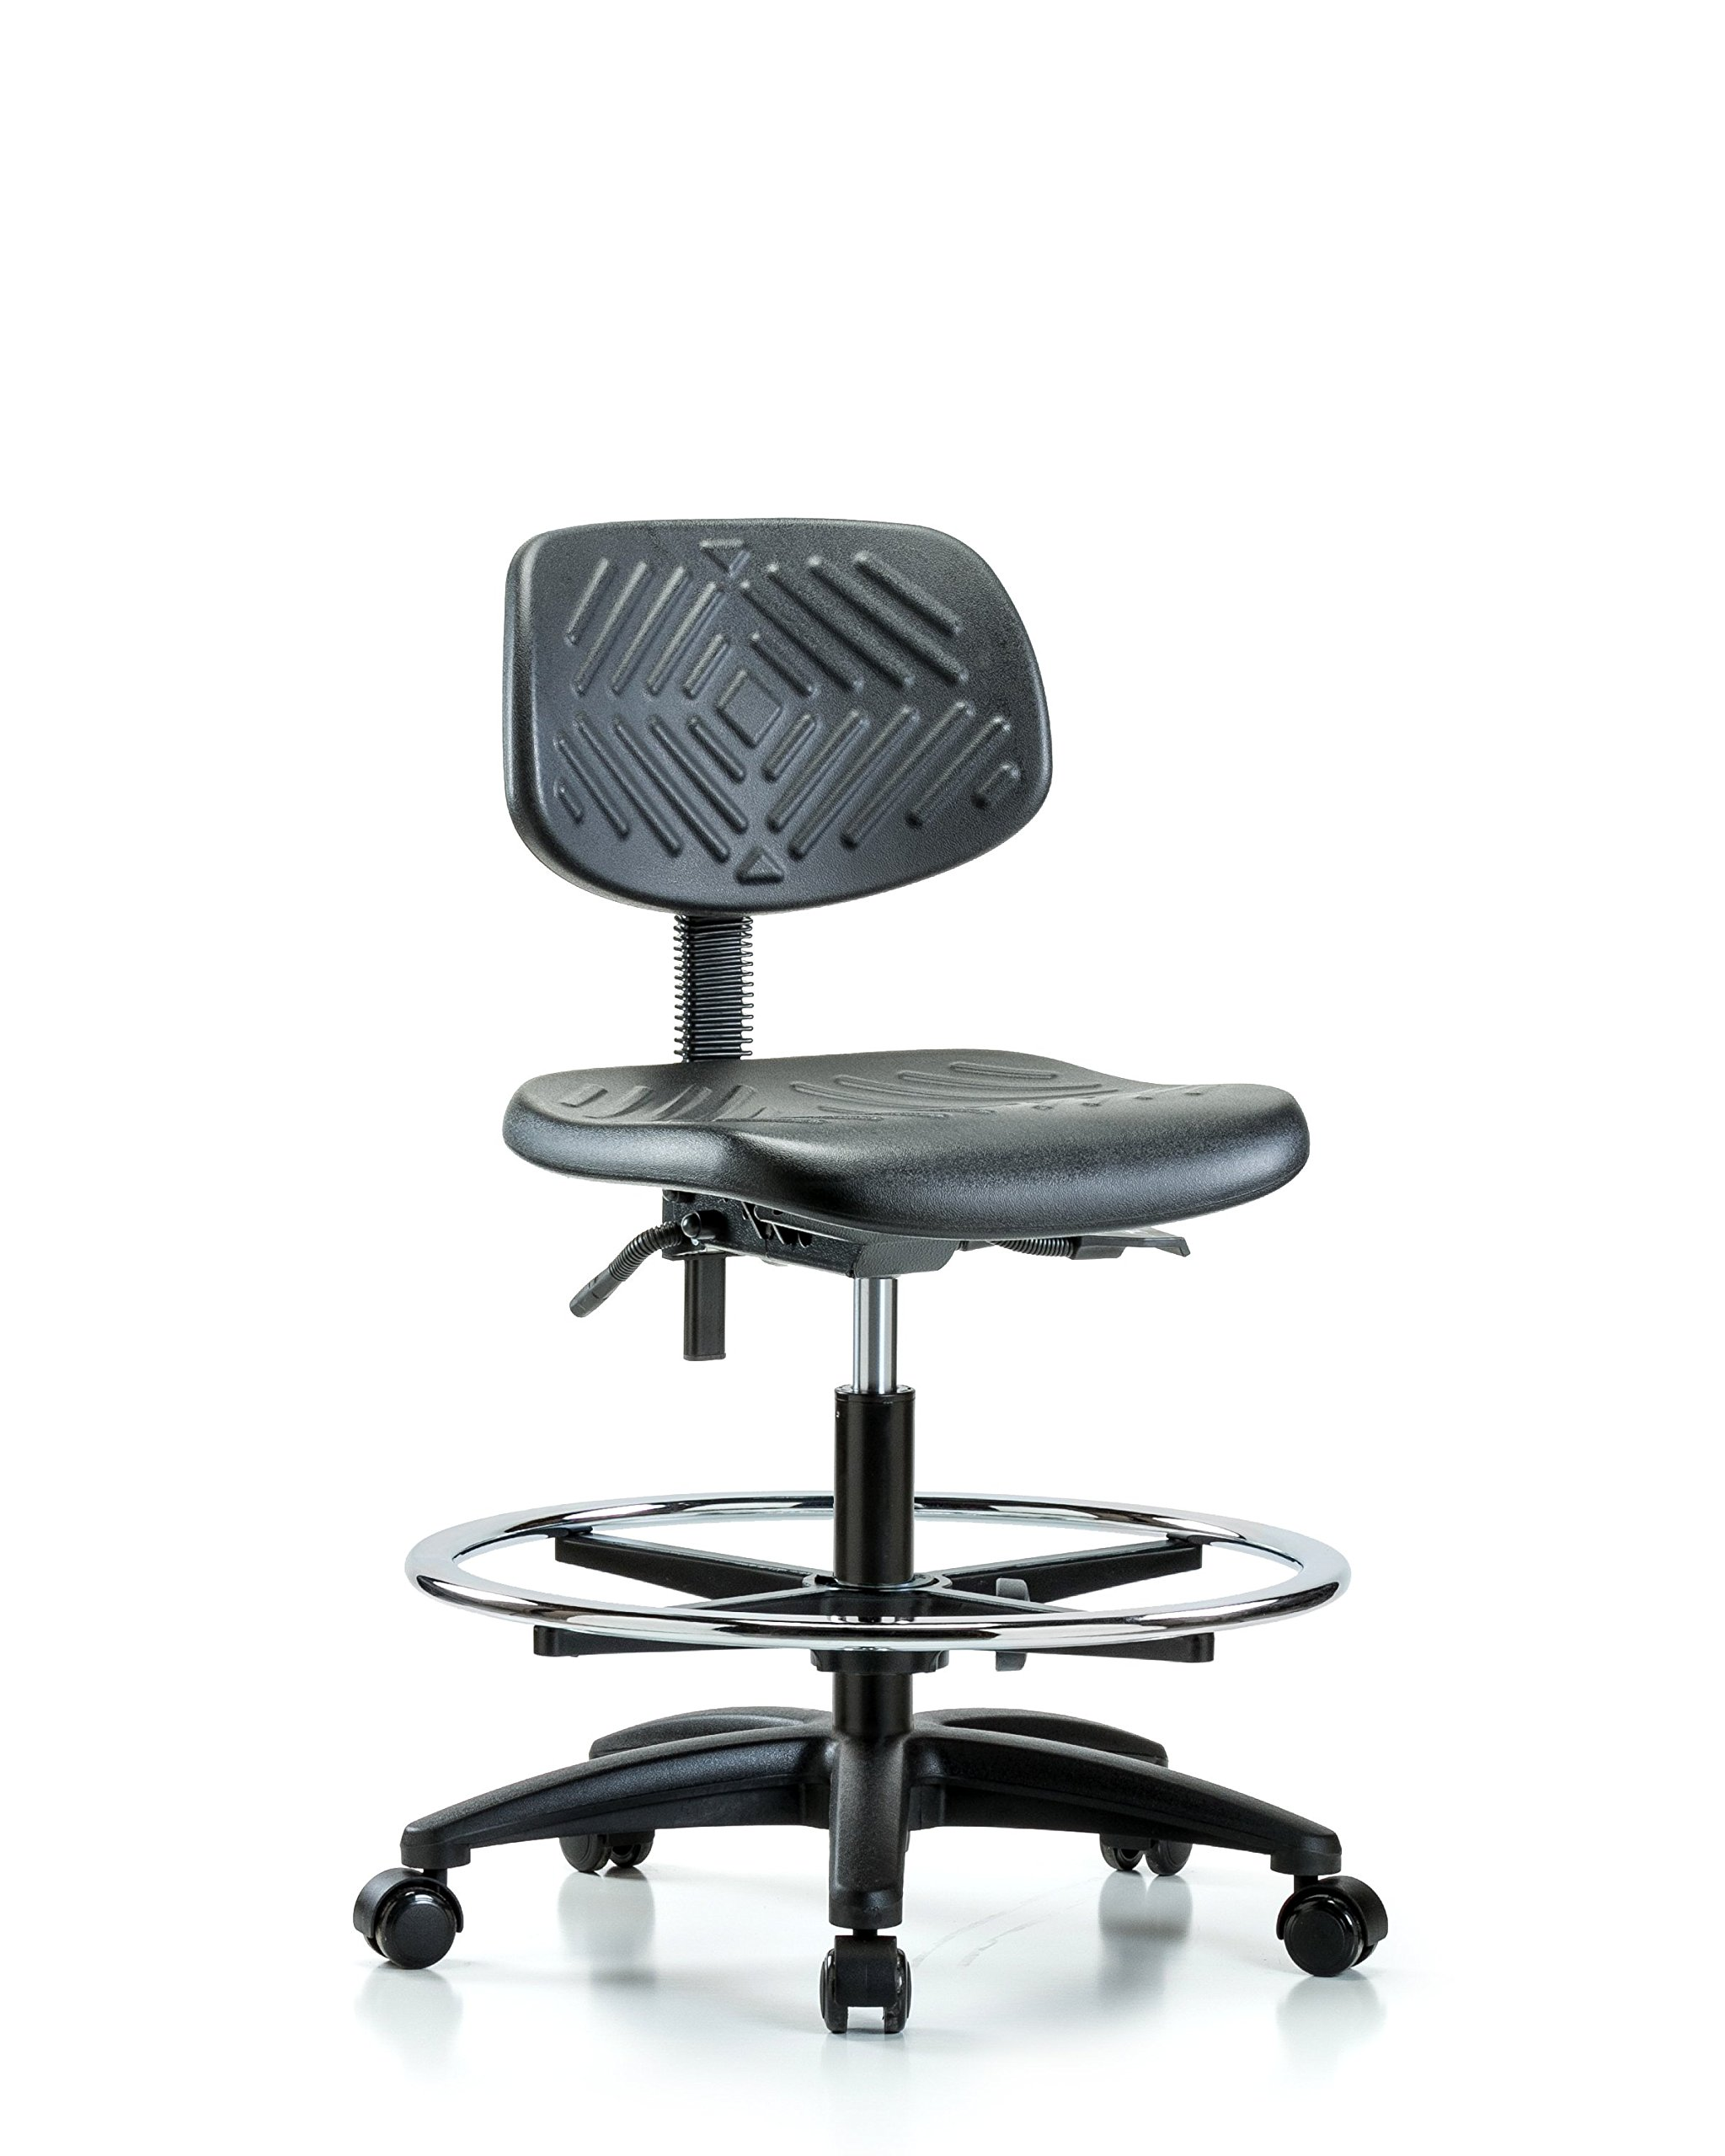 Heavy Duty Industrial Chair for Labs or Class Rooms with Chrome Foot Ring and Wheels - Bench Height